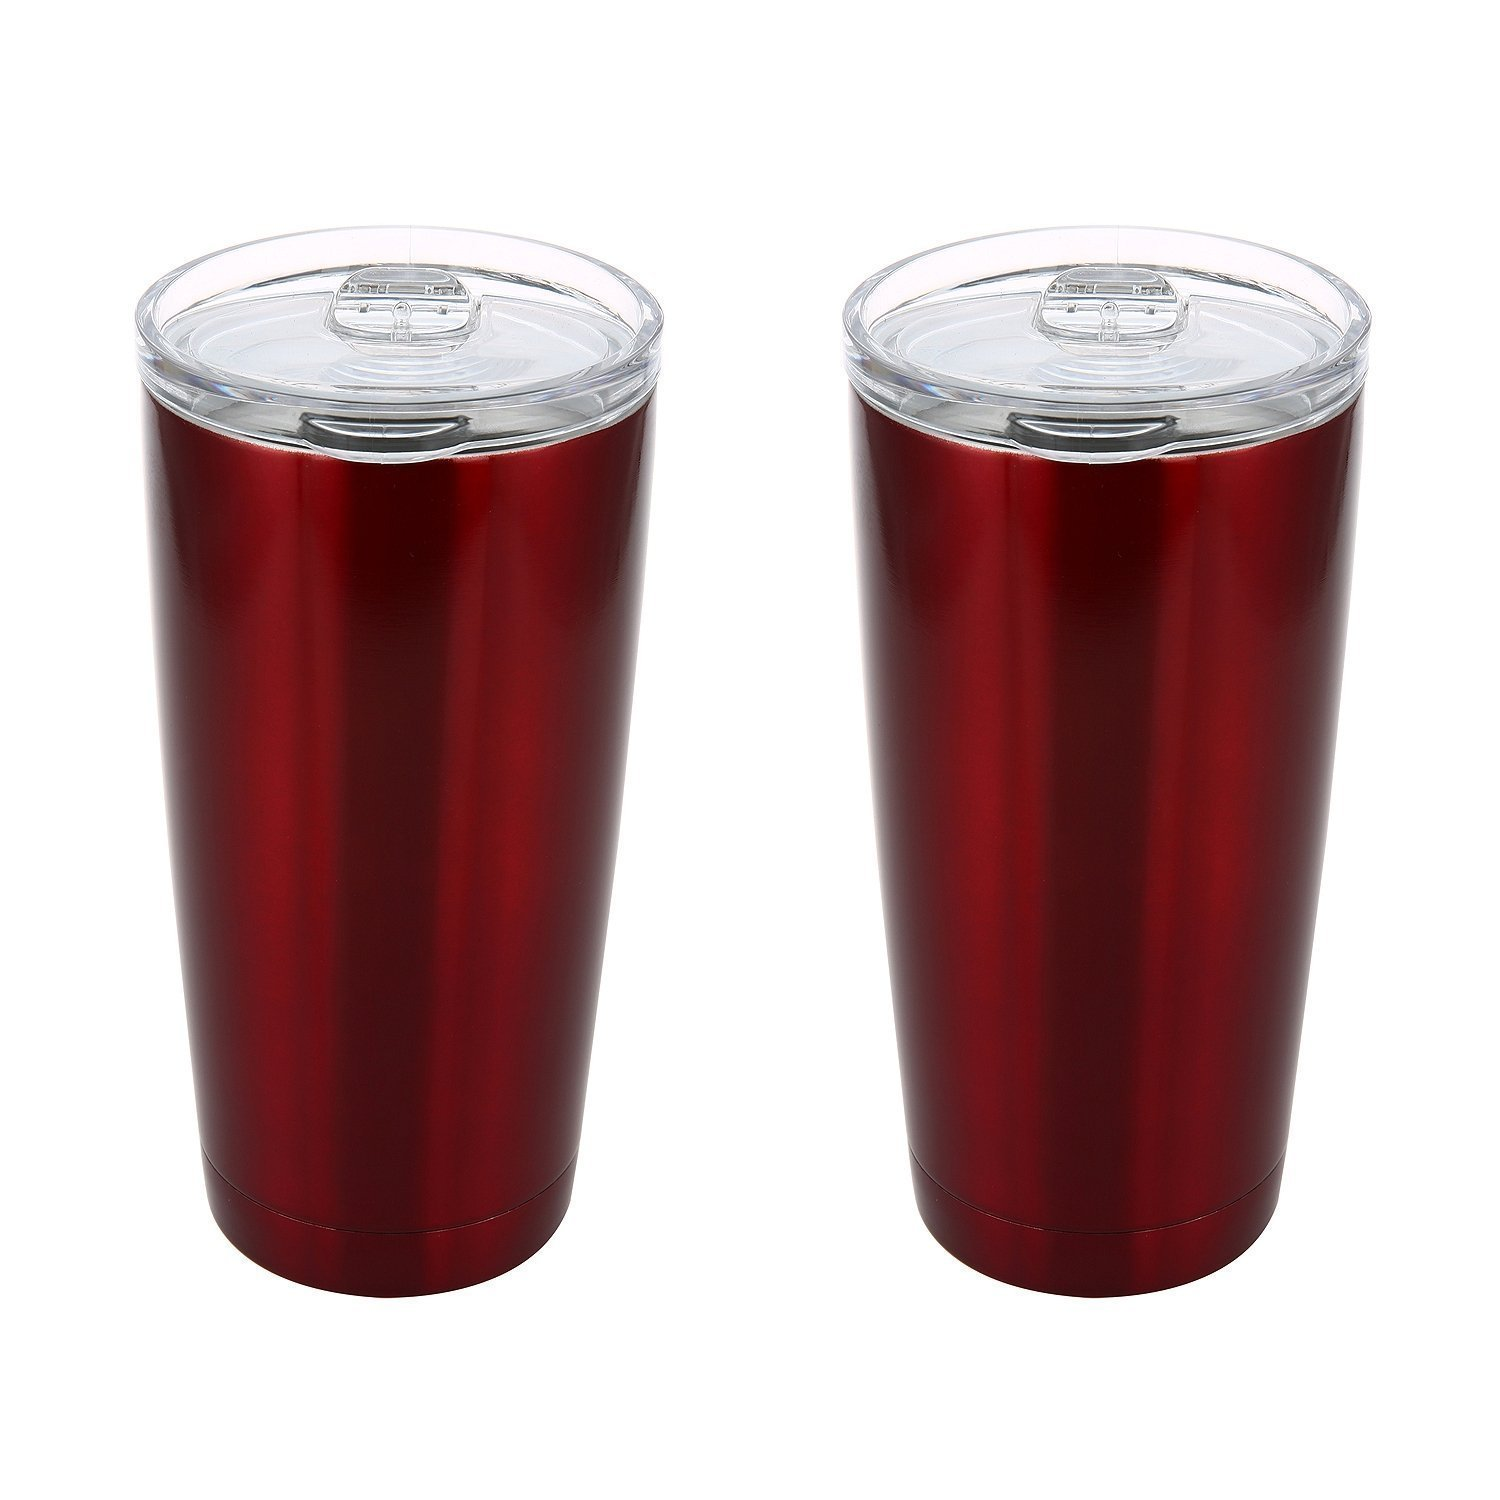 Member's Mark Stainless Steel Vacuum Insulated Tumblers 2 Pack 20 Oz 30 Oz (Red, 20 oz)